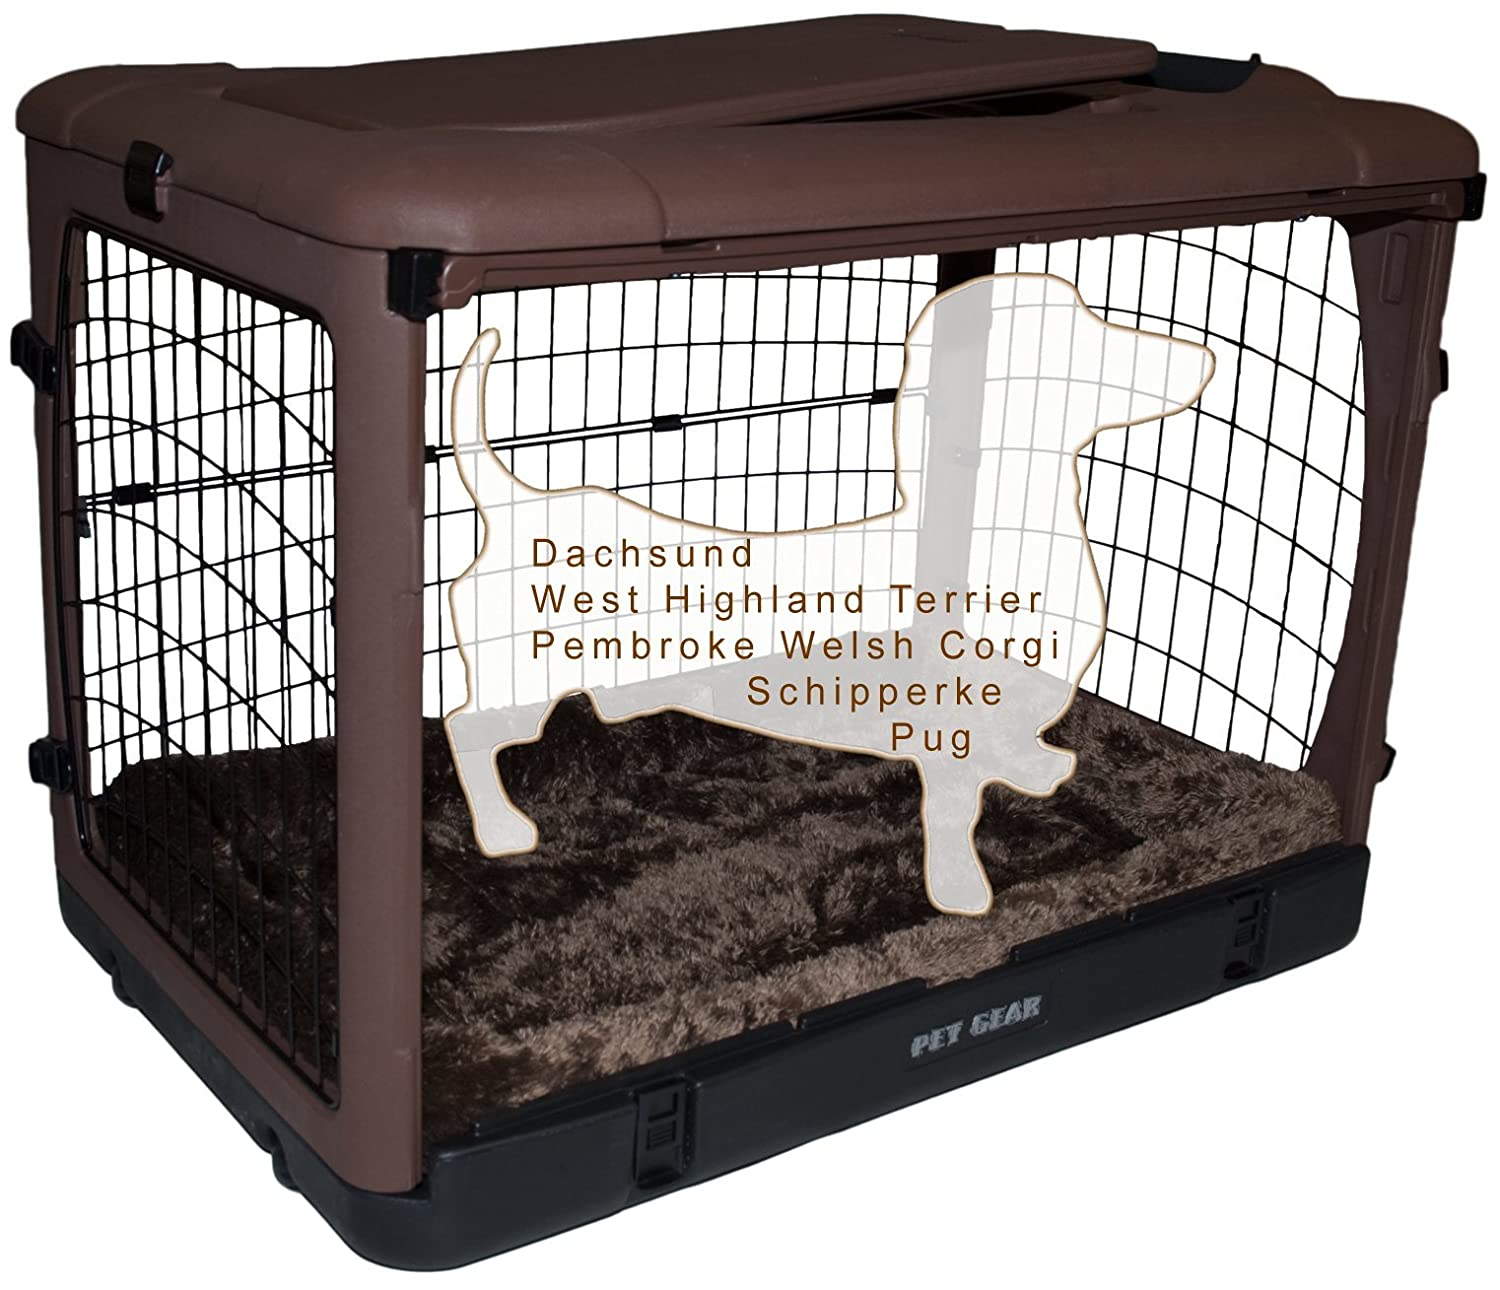 Amazon.com : Pet Gear The Other Door Steel Crate With Fleece Pad For Cats  And Dogs Up To 70 Pound, Sage : Pet Supplies